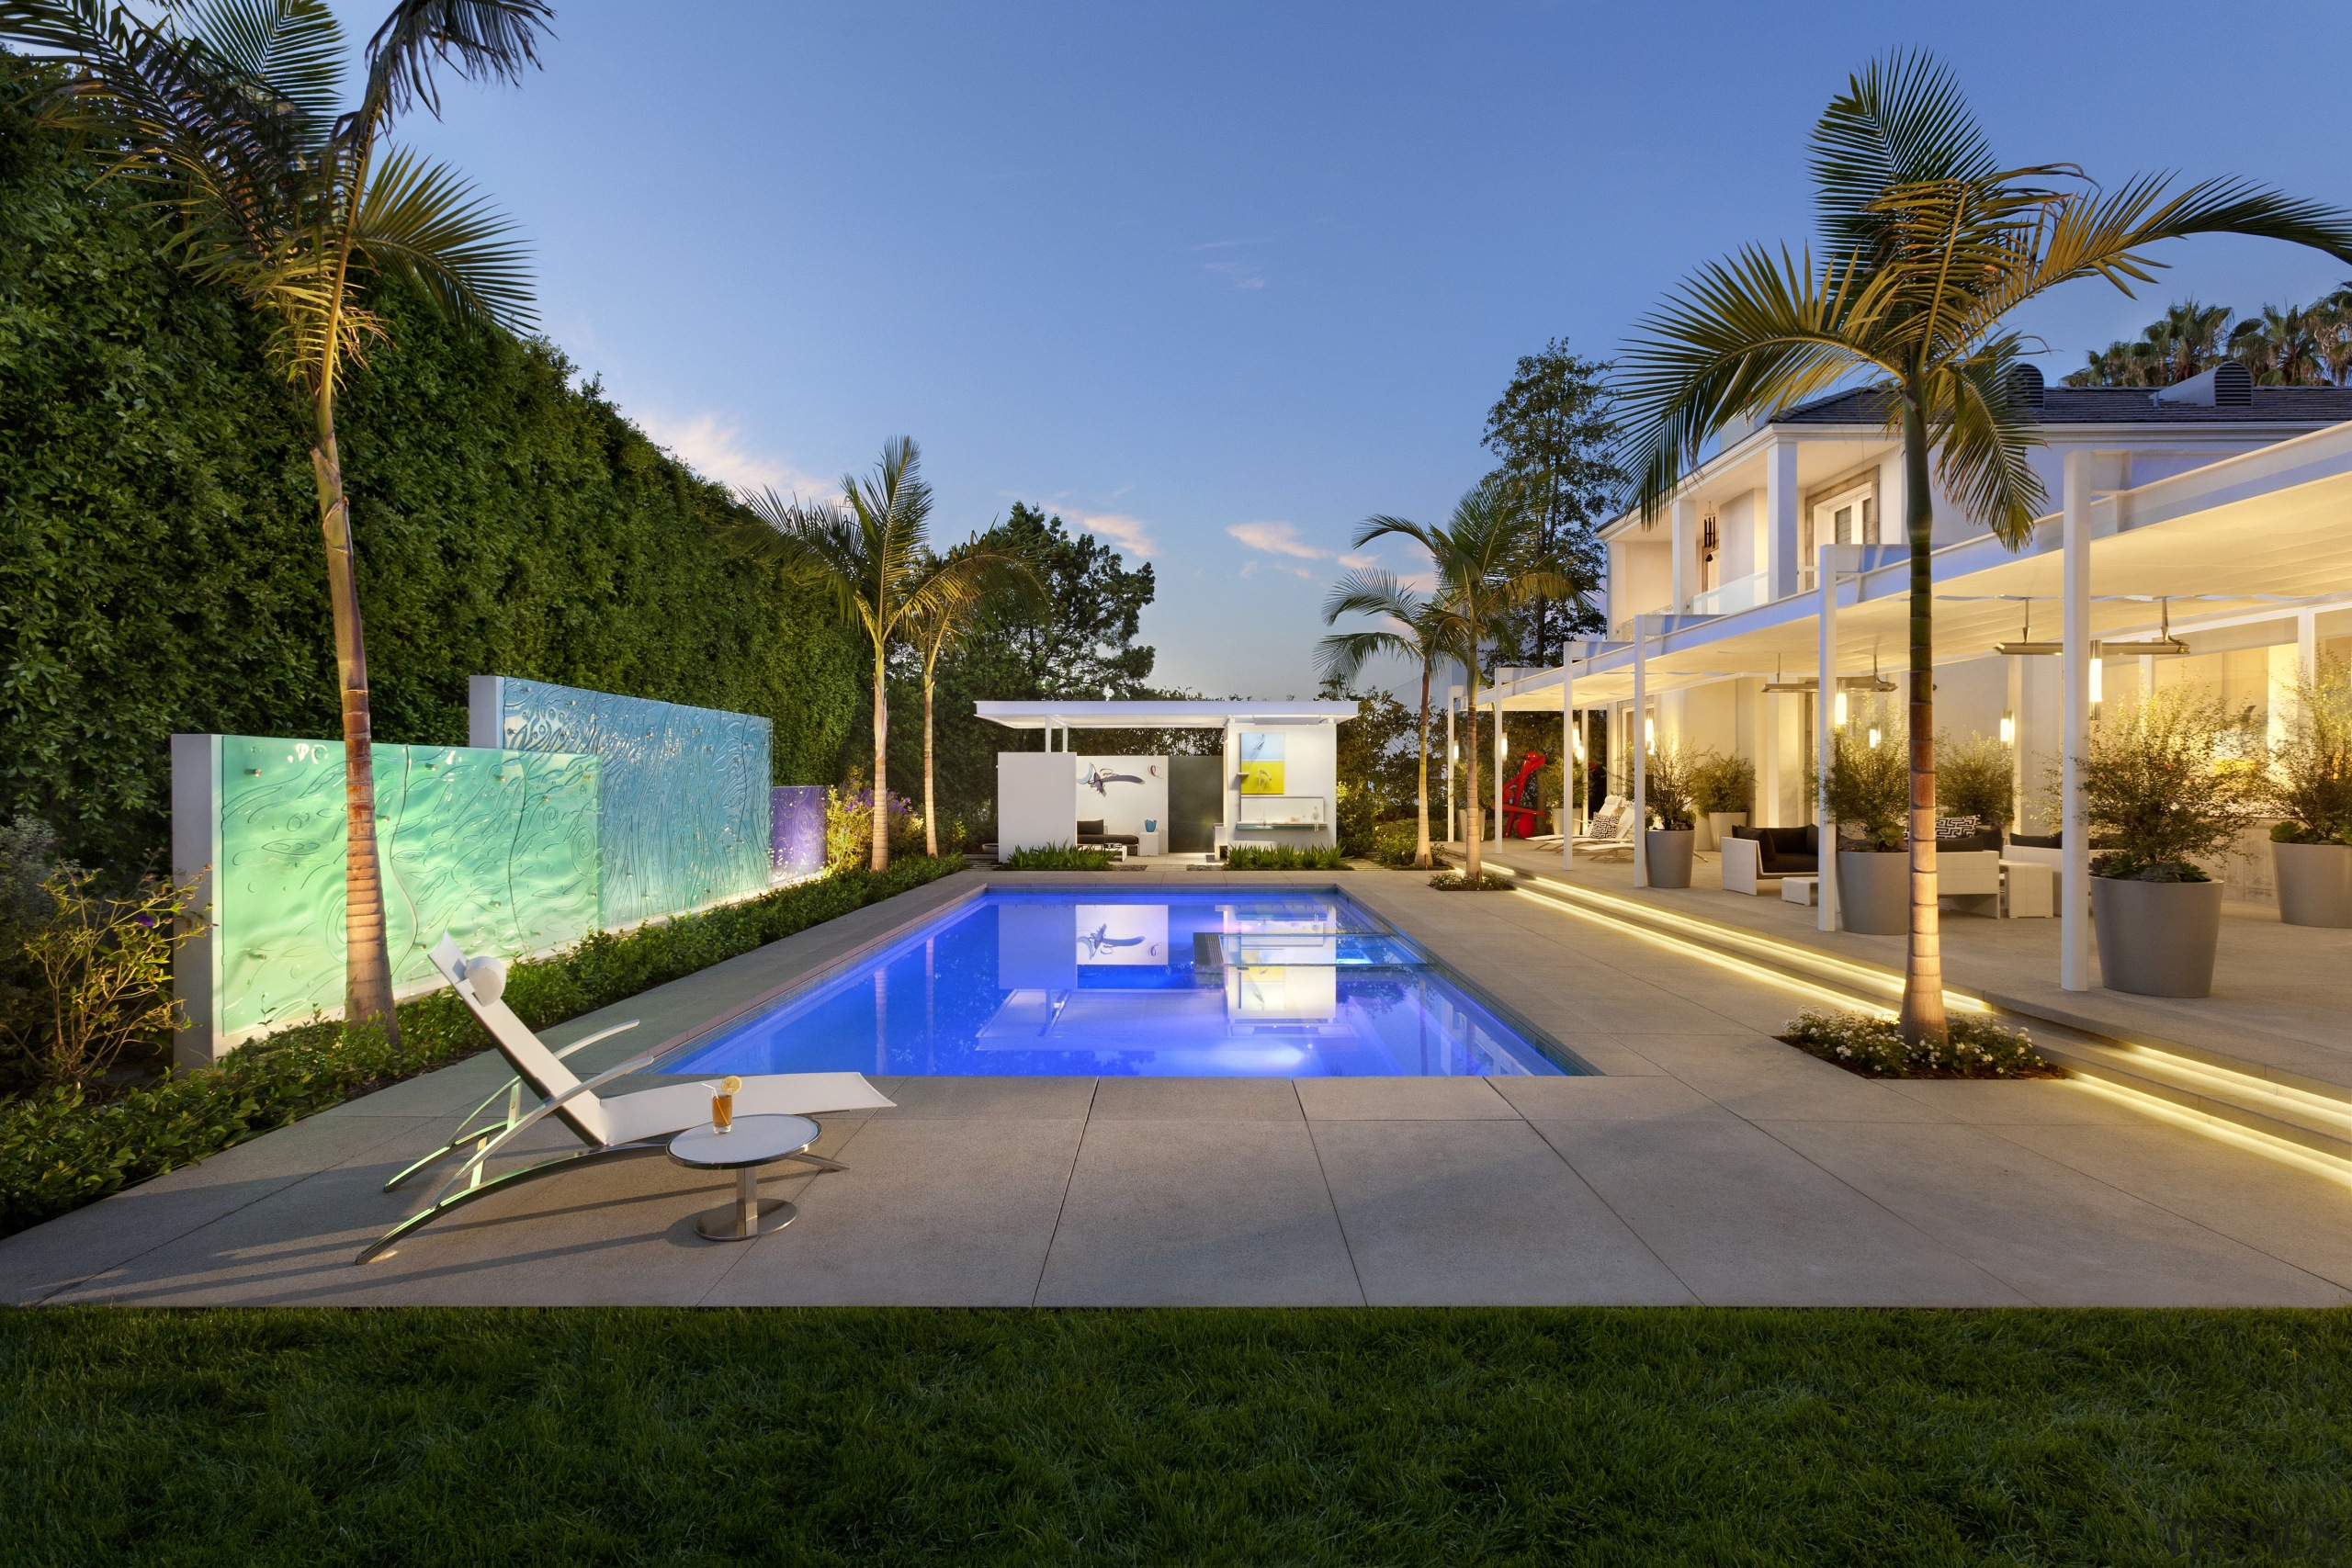 View of the pool which was built by arecales, estate, hacienda, home, house, leisure, mansion, palm tree, property, real estate, residential area, resort, swimming pool, villa, brown